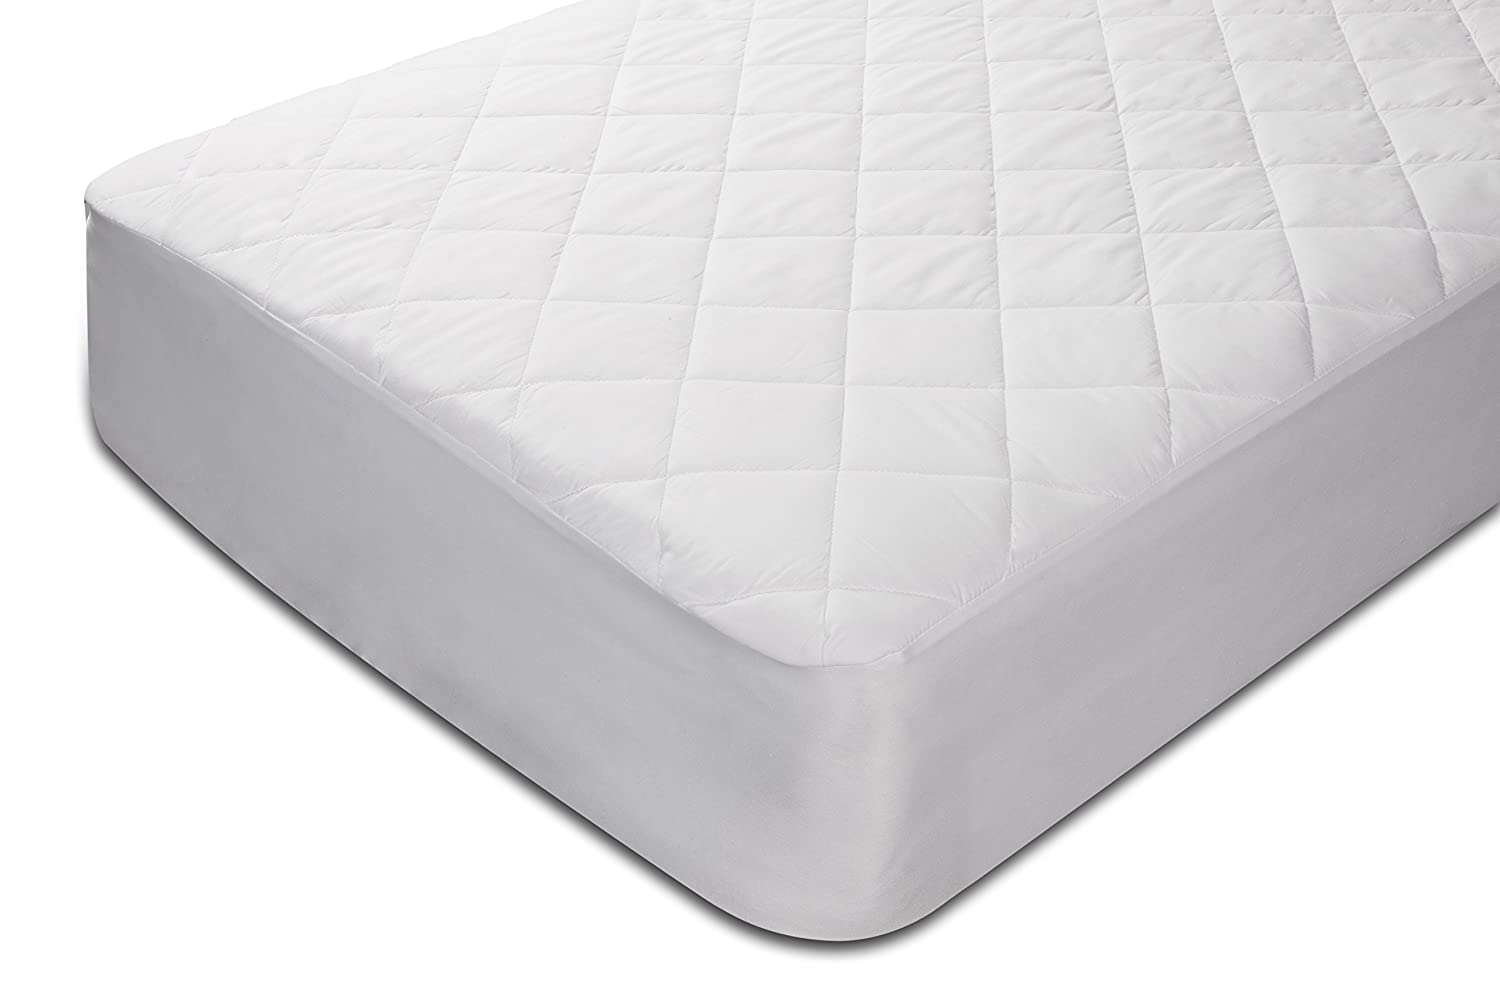 Pikolin - Quilted Fibre Mattress Protector – Waterproof, anti-dust mite, white Cama 80-80 x 190/200 cm white Pikolin Home PA203